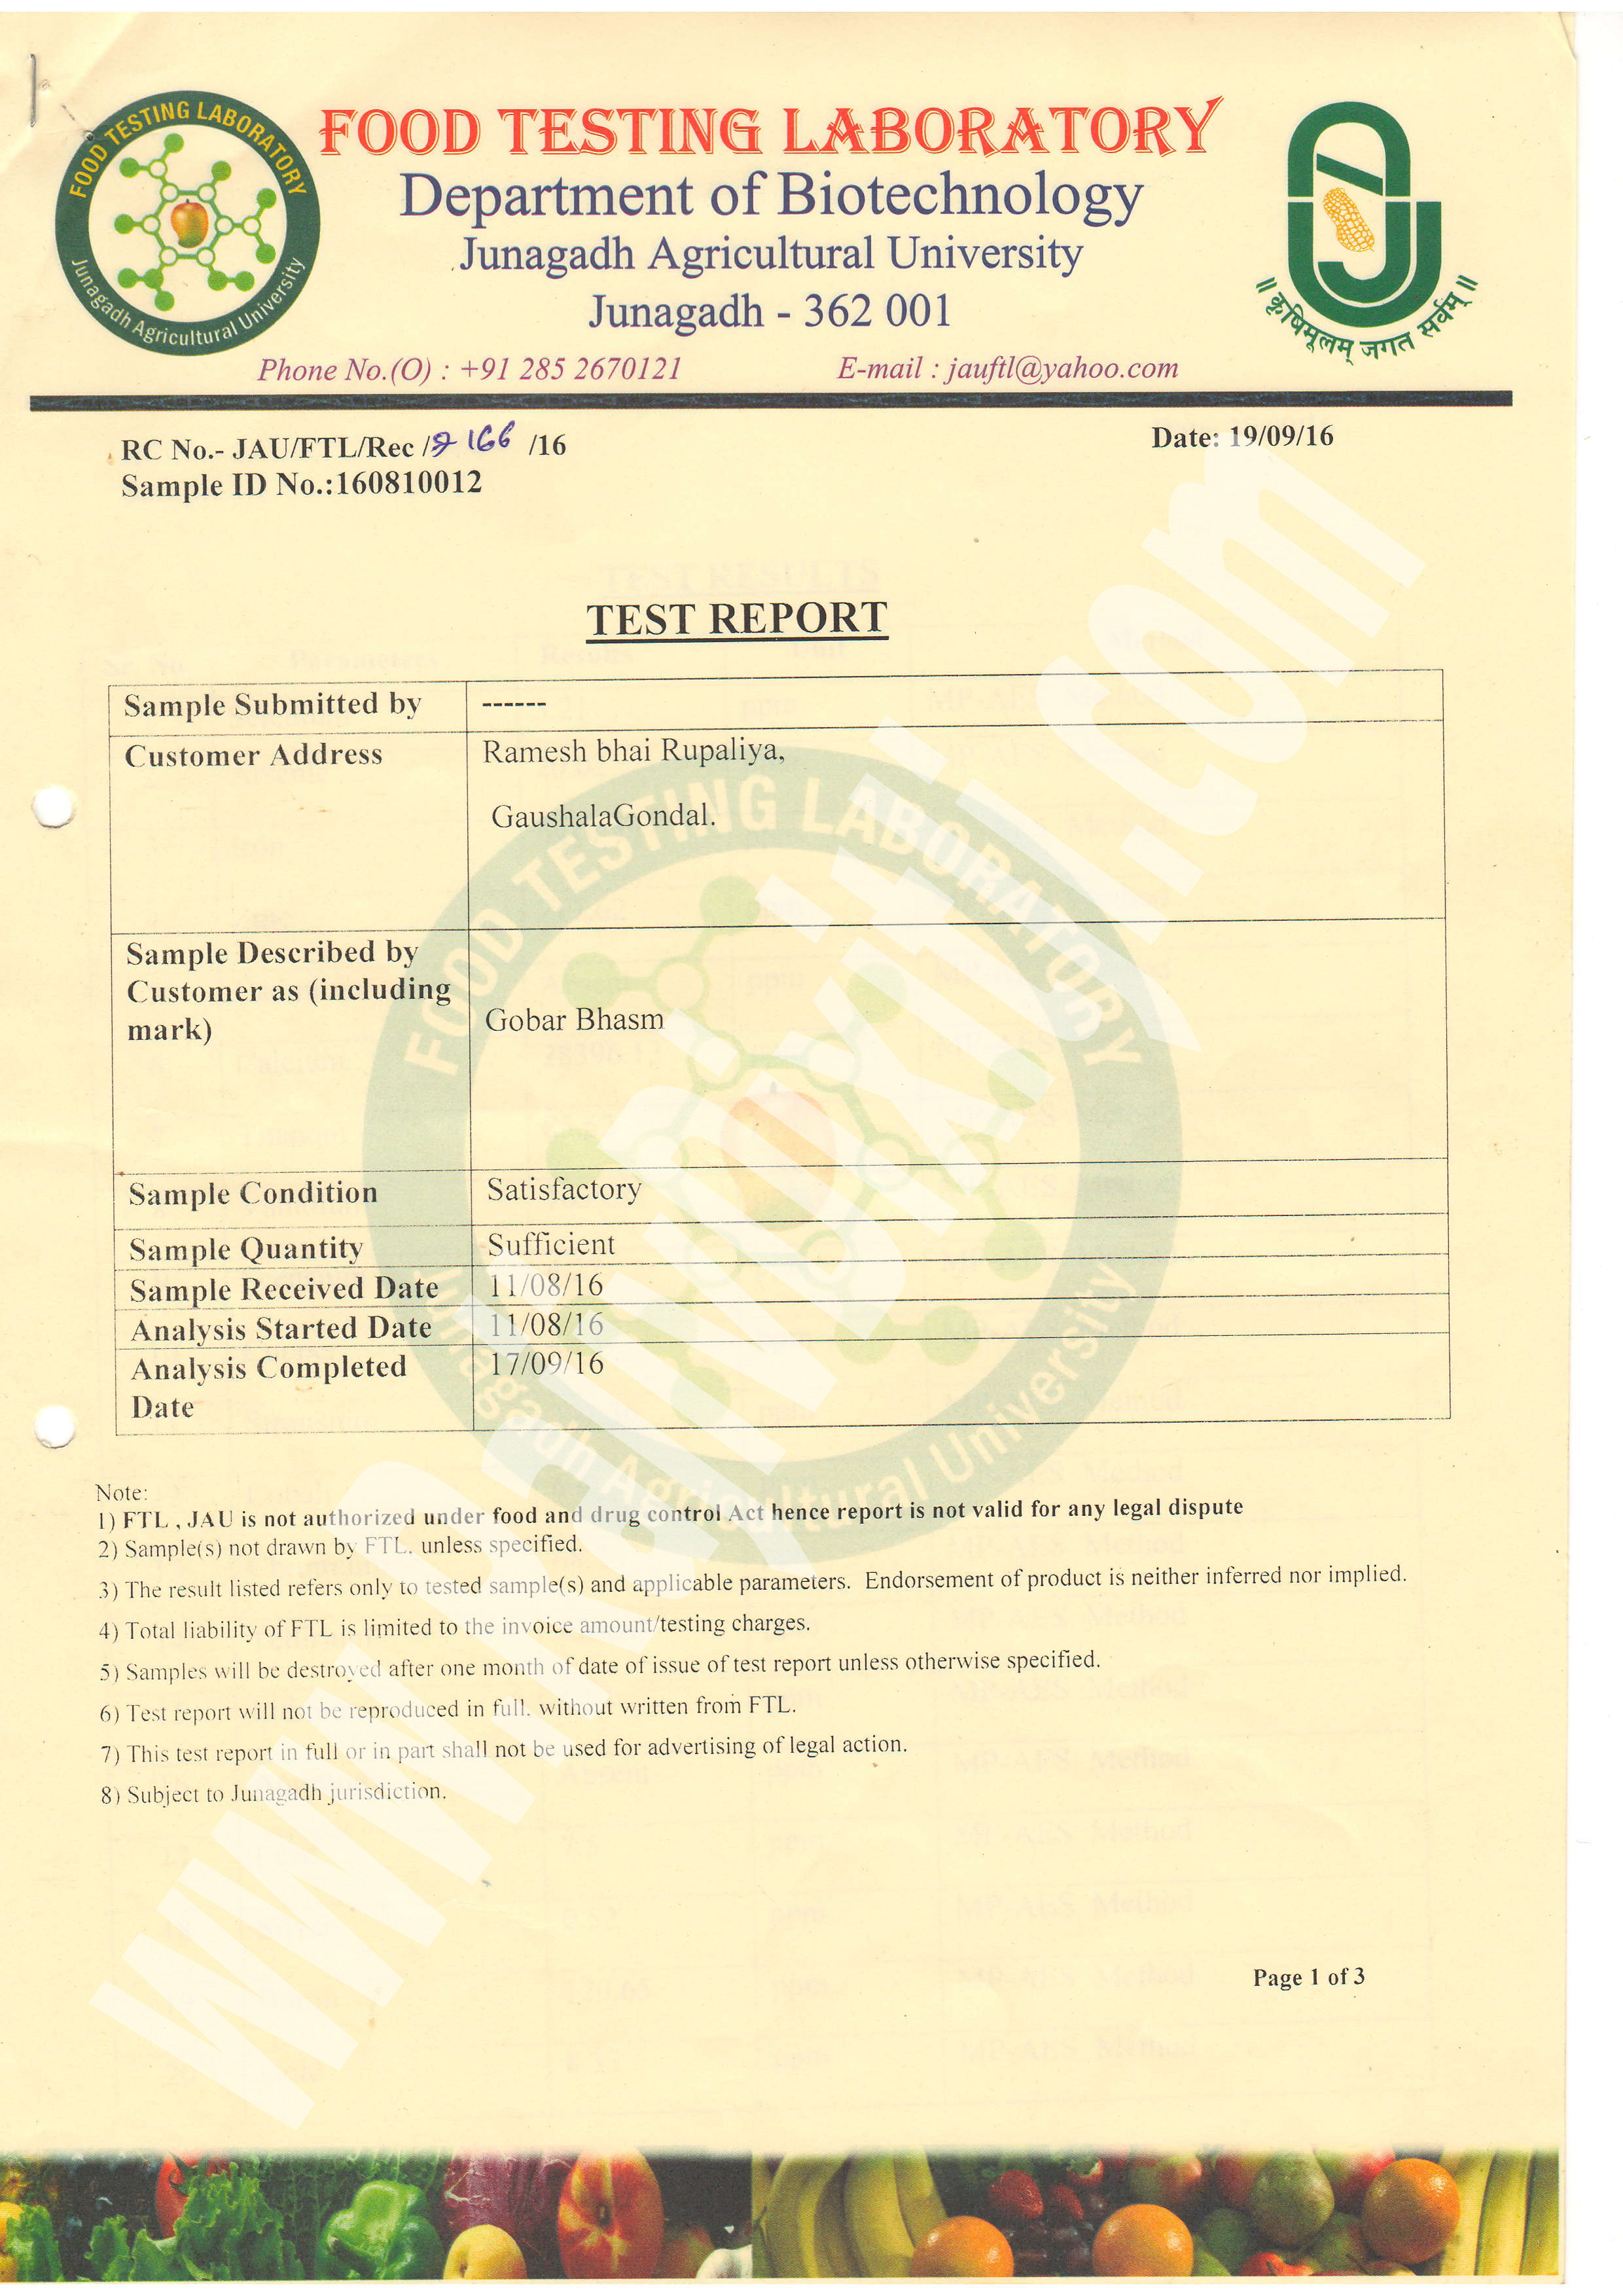 lab-report-of-gobar-bhasam-page-1